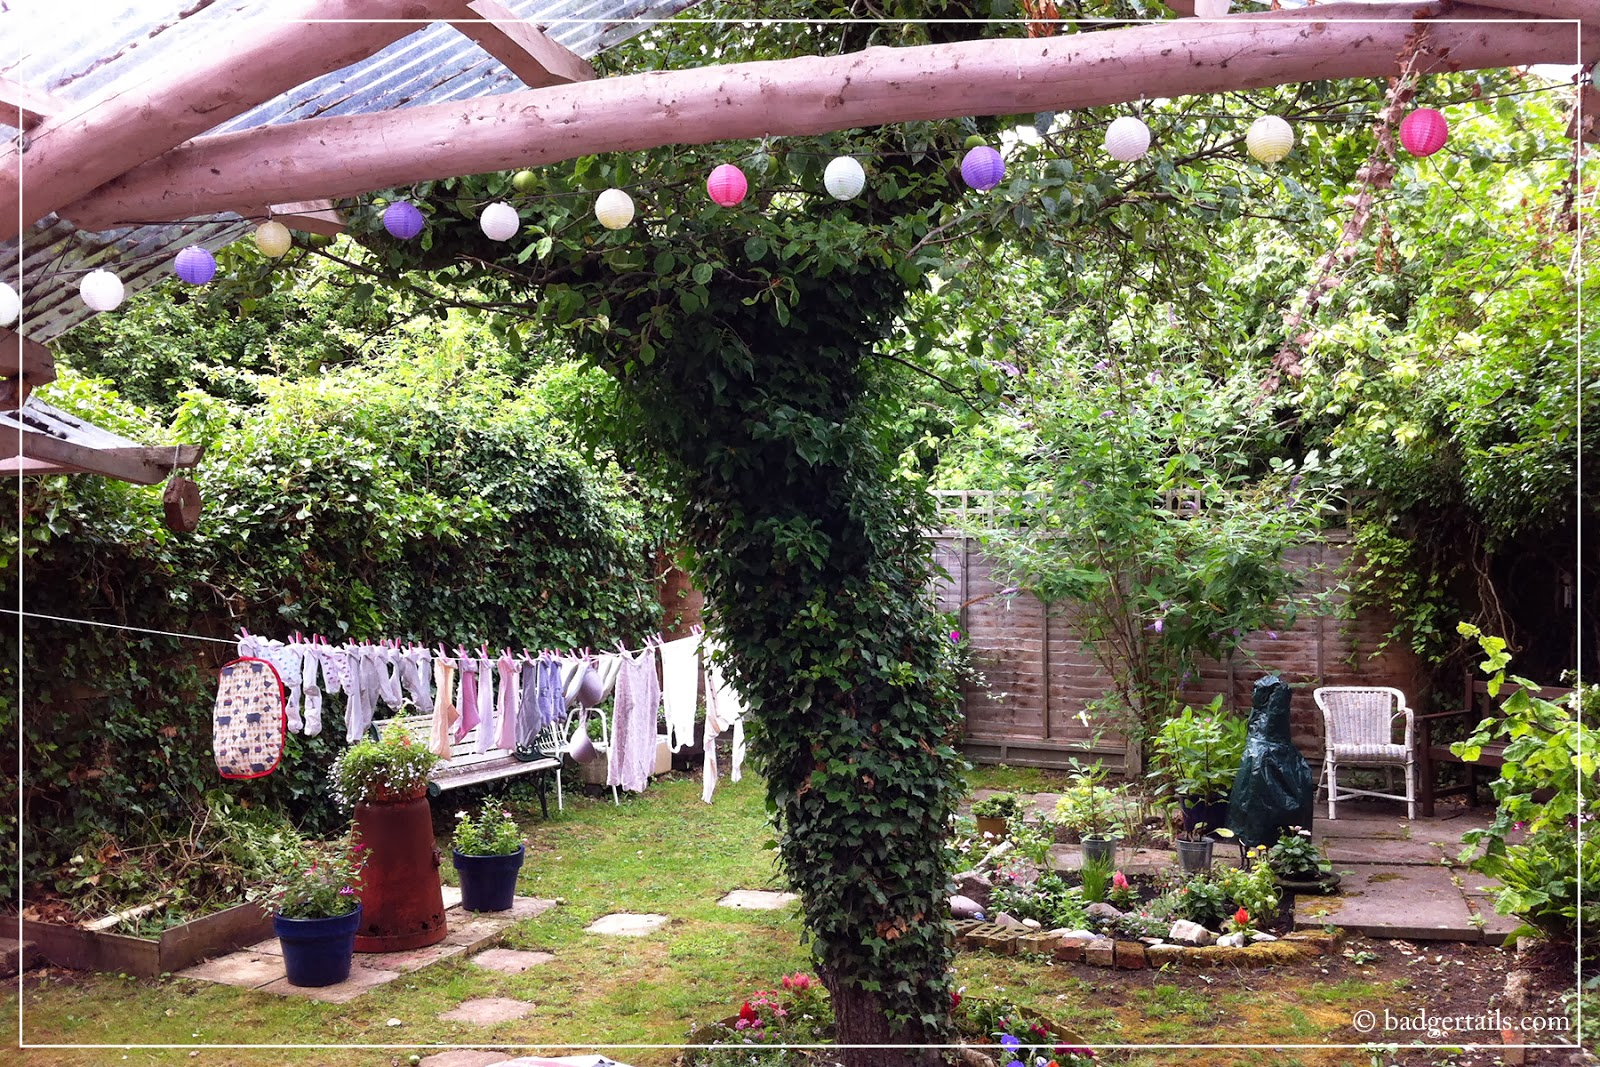 country cottage garden in summer with washing blowing on line